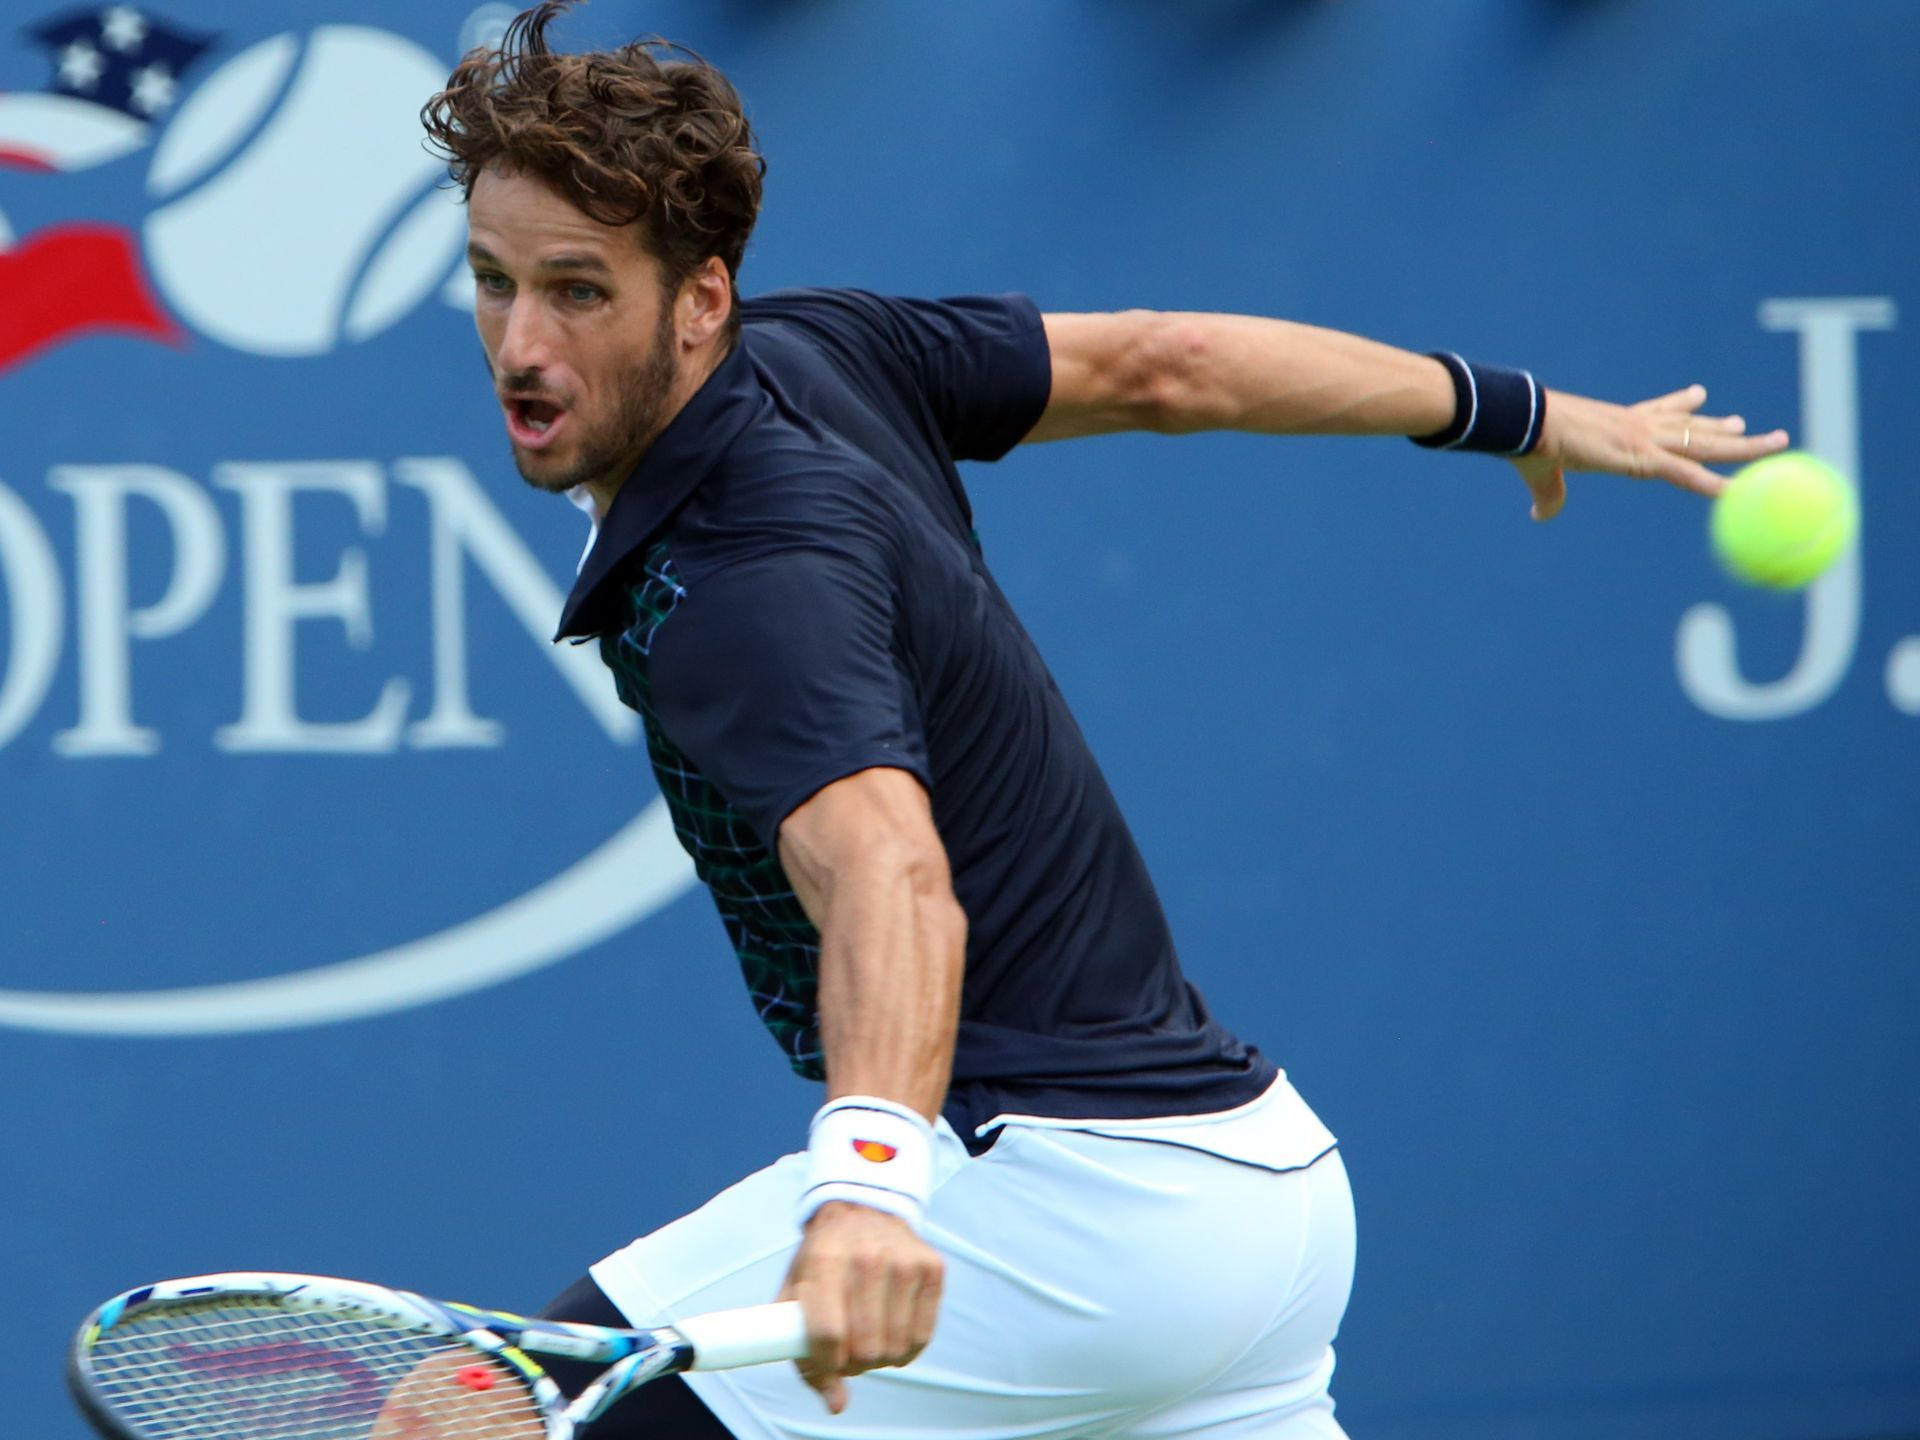 Early rounds of the U.S. Open Usa today sports, Tennis